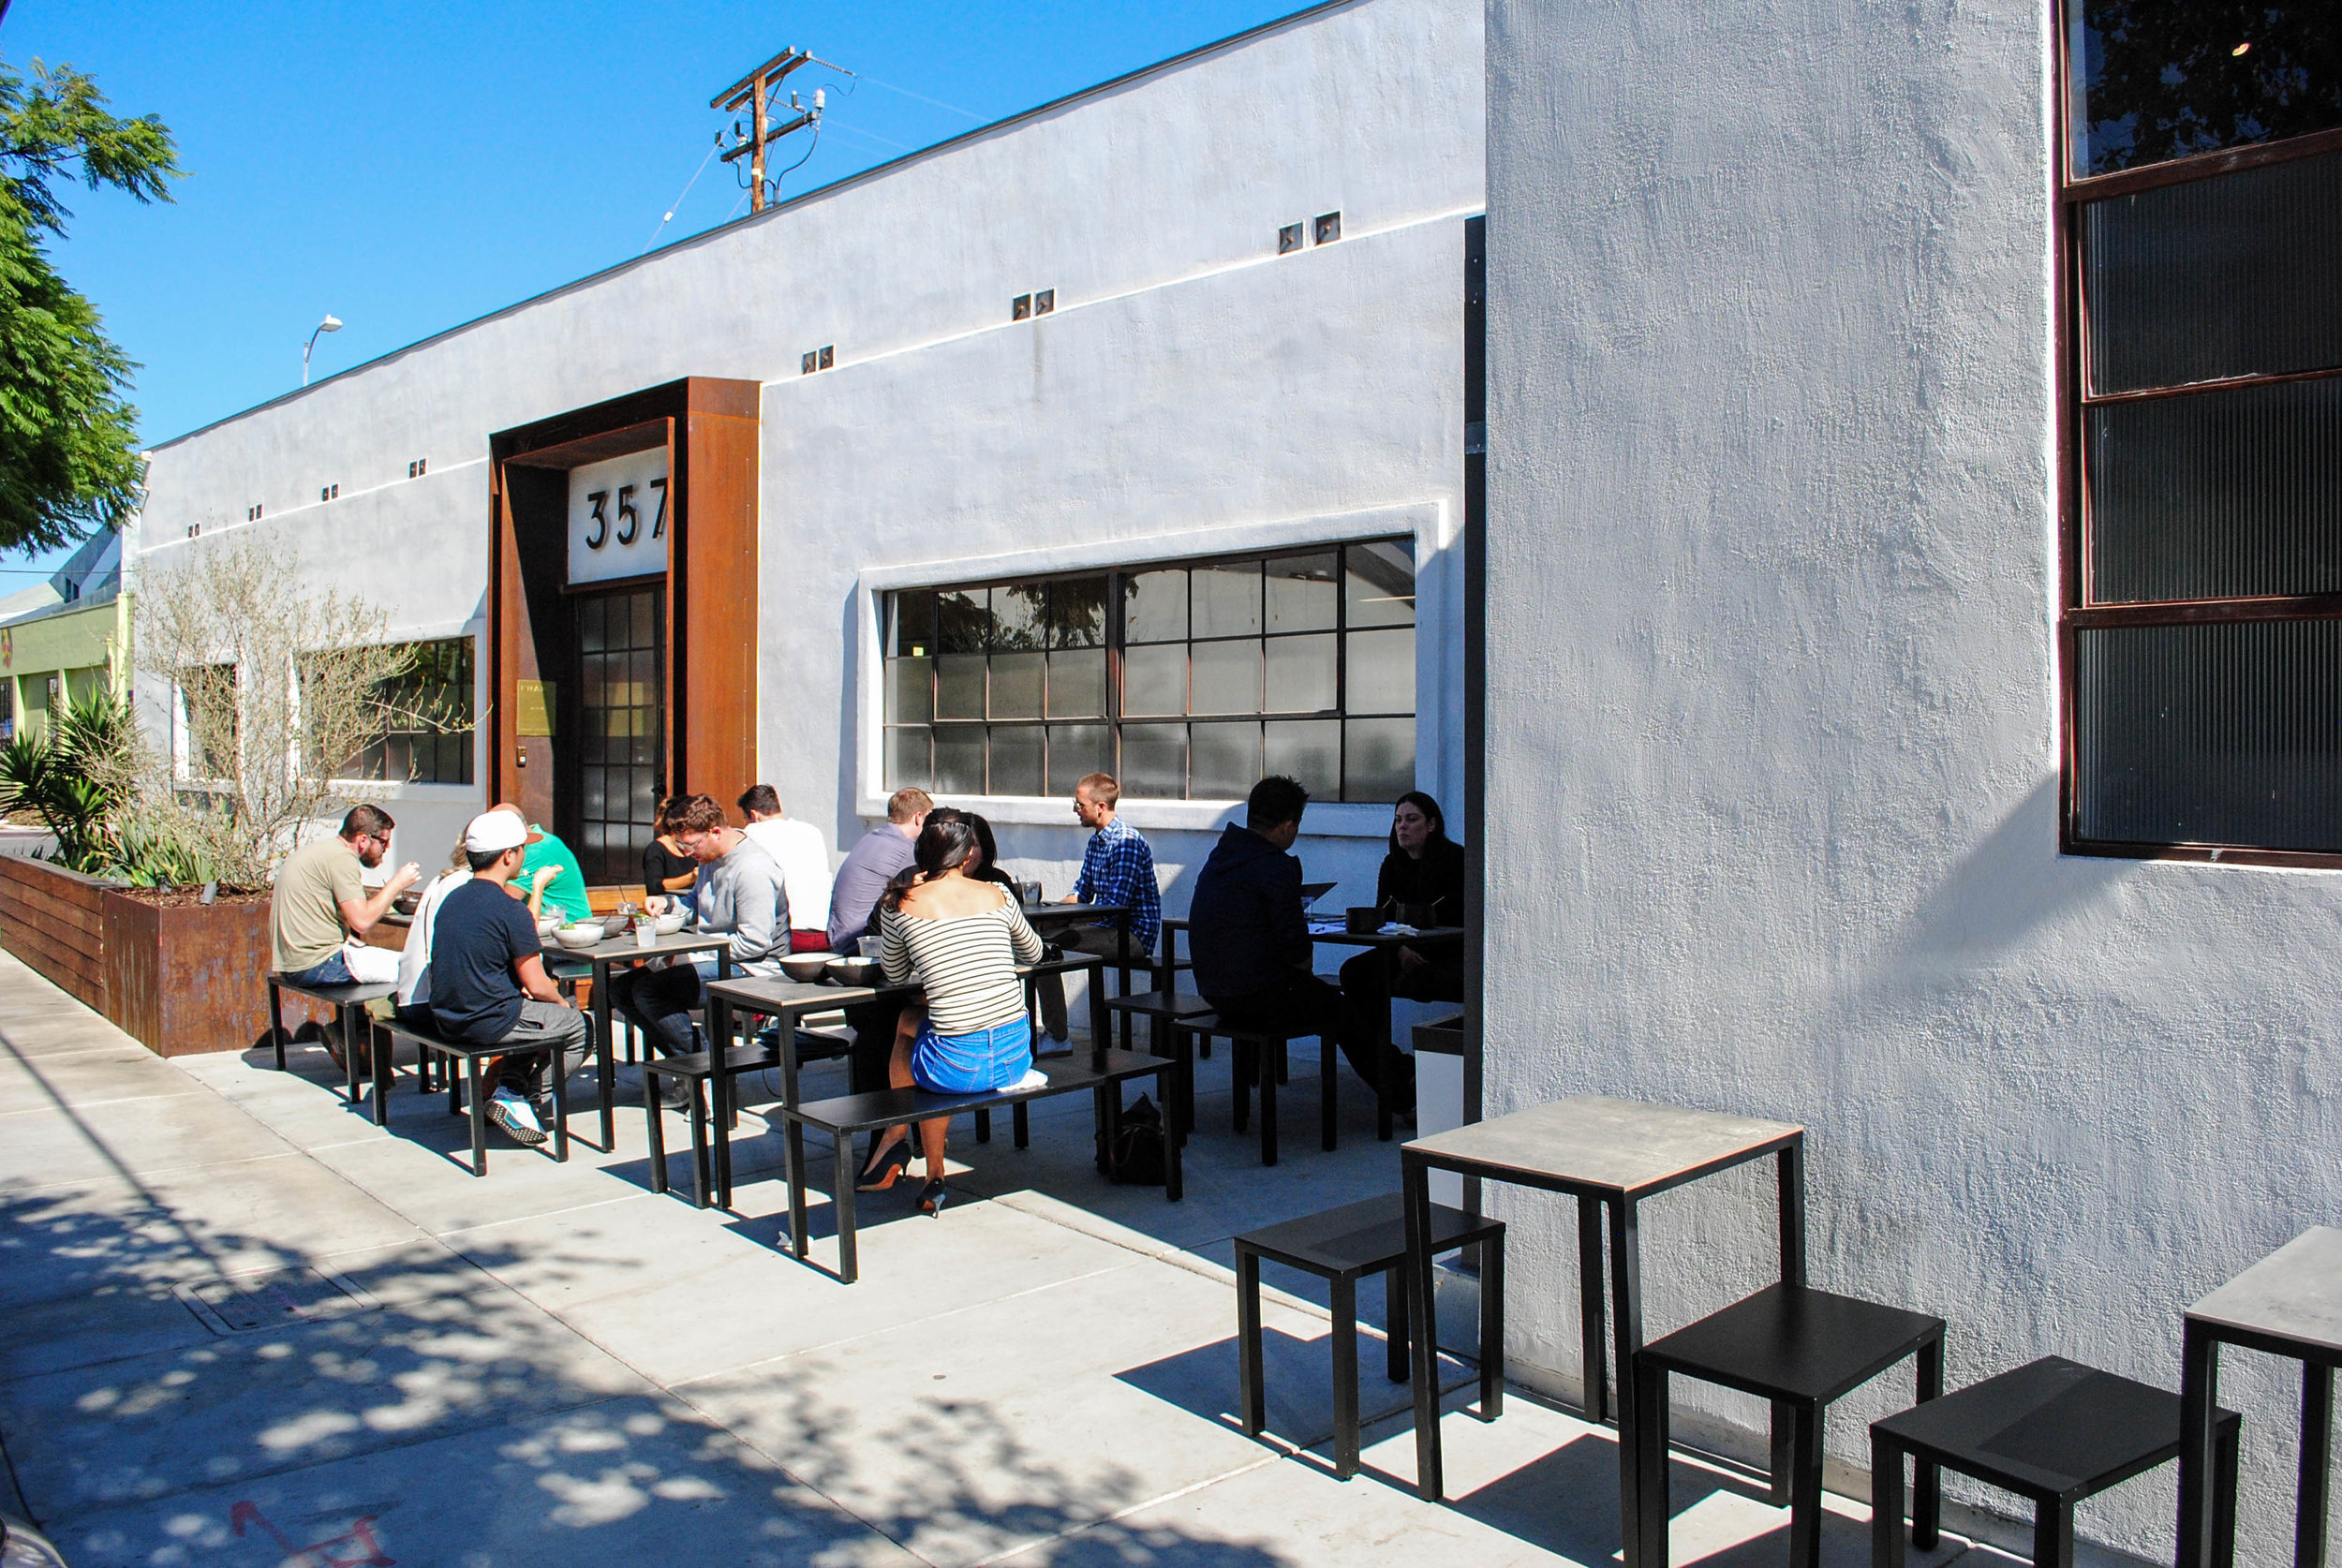 Outdoor seating at Destroyer, Culver City, CA